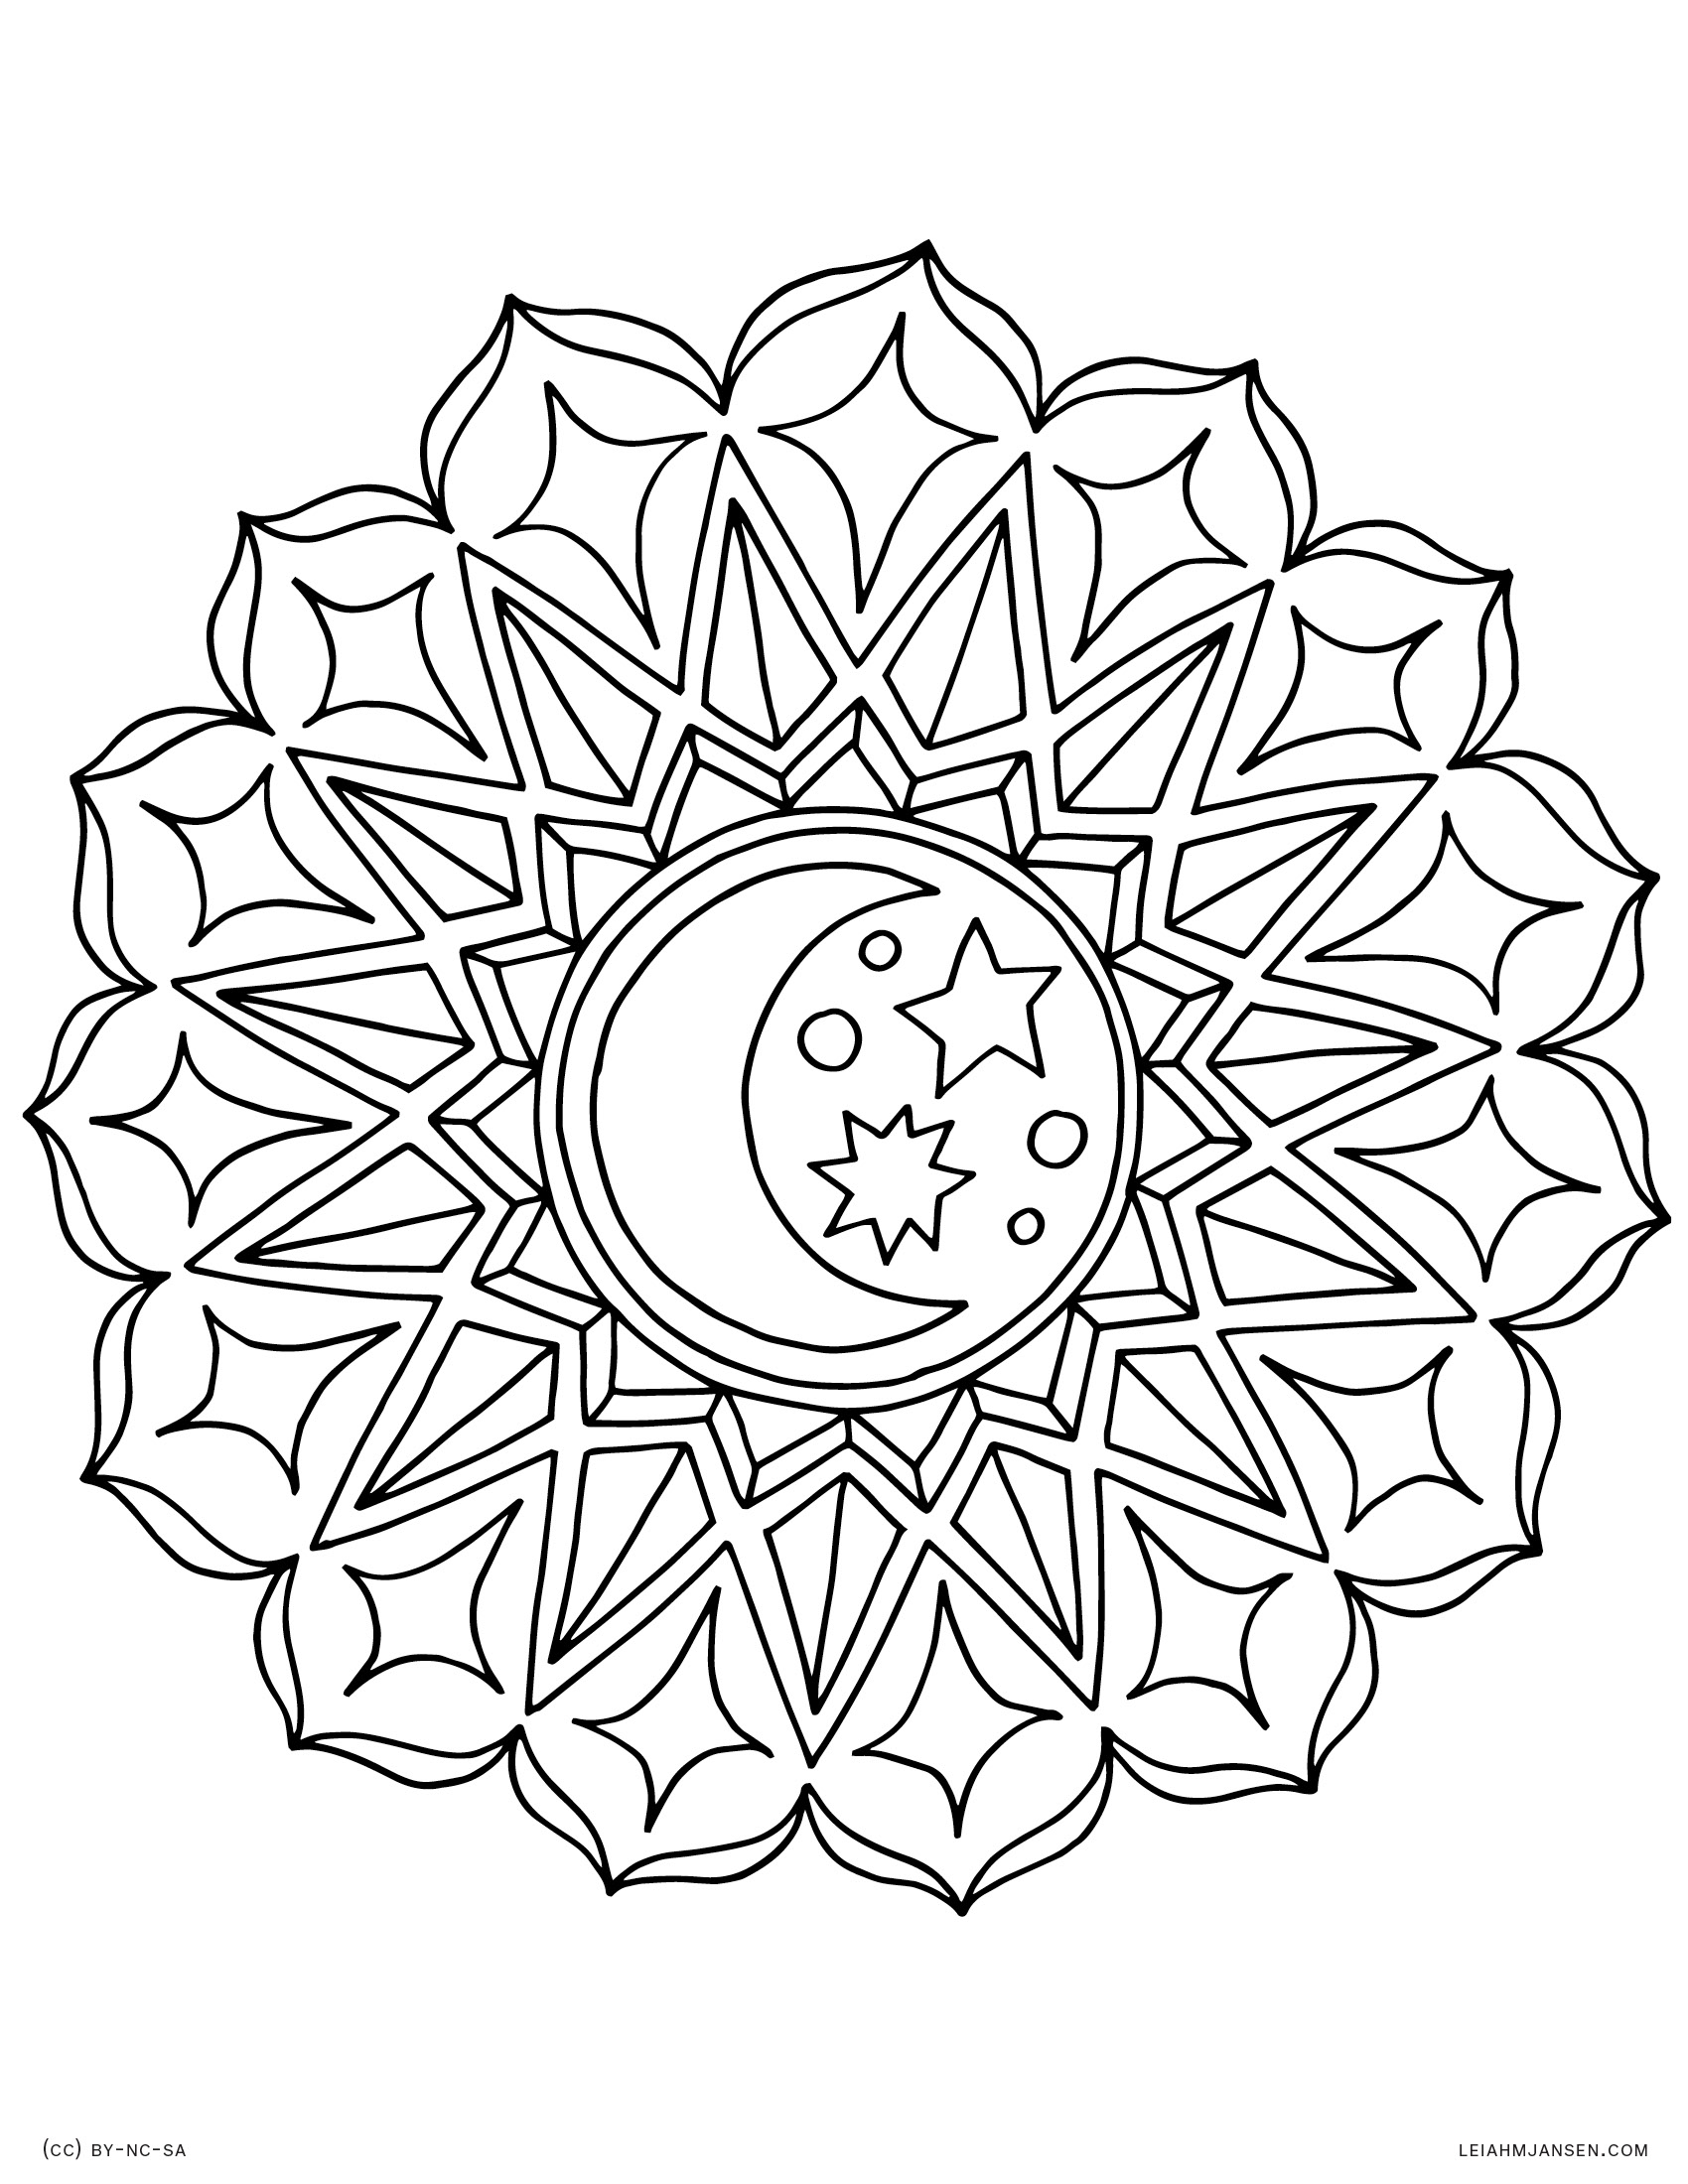 This is a picture of Exceptional Printable Mandala Coloring